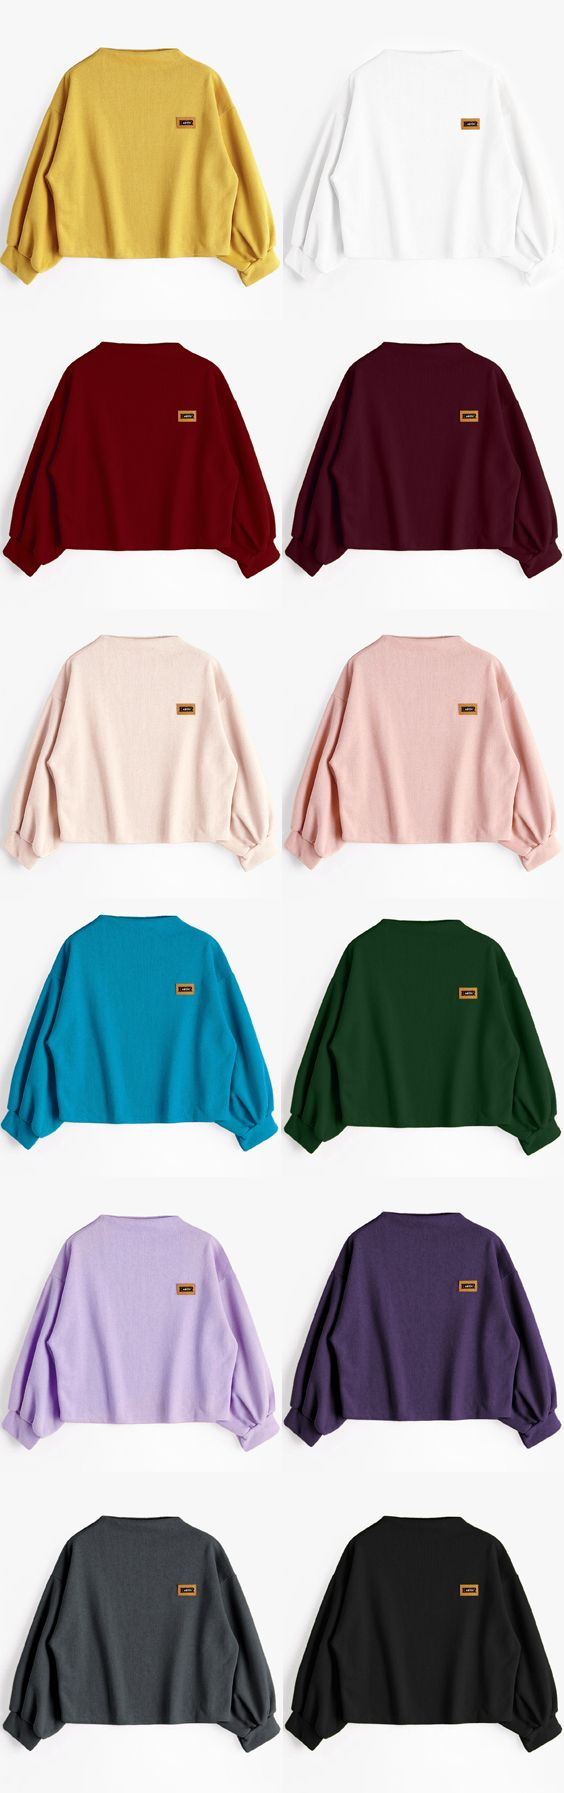 Up to 68% OFF! Badge Patched Lantern Sleeve Sweatshirt. Zaful,zaful.com,zaful fashion,tops,womens tops,outerwear,sweatshirts,hoodies,hoodies outfit,hoodies for teens,sweatshirts outfit,long sleeve tops,sweatshirts for teens,winter outfits,fall outfits,tops,sweatshirts for women,women's hoodies,womens sweatshirts,cute sweatshirts,floral hoodie,crop hoodies,oversized sweatshirt, halloween costumes,halloween,halloween outfits,halloween tops,halloween costume ideas. @zaful Extra 10% OFF…